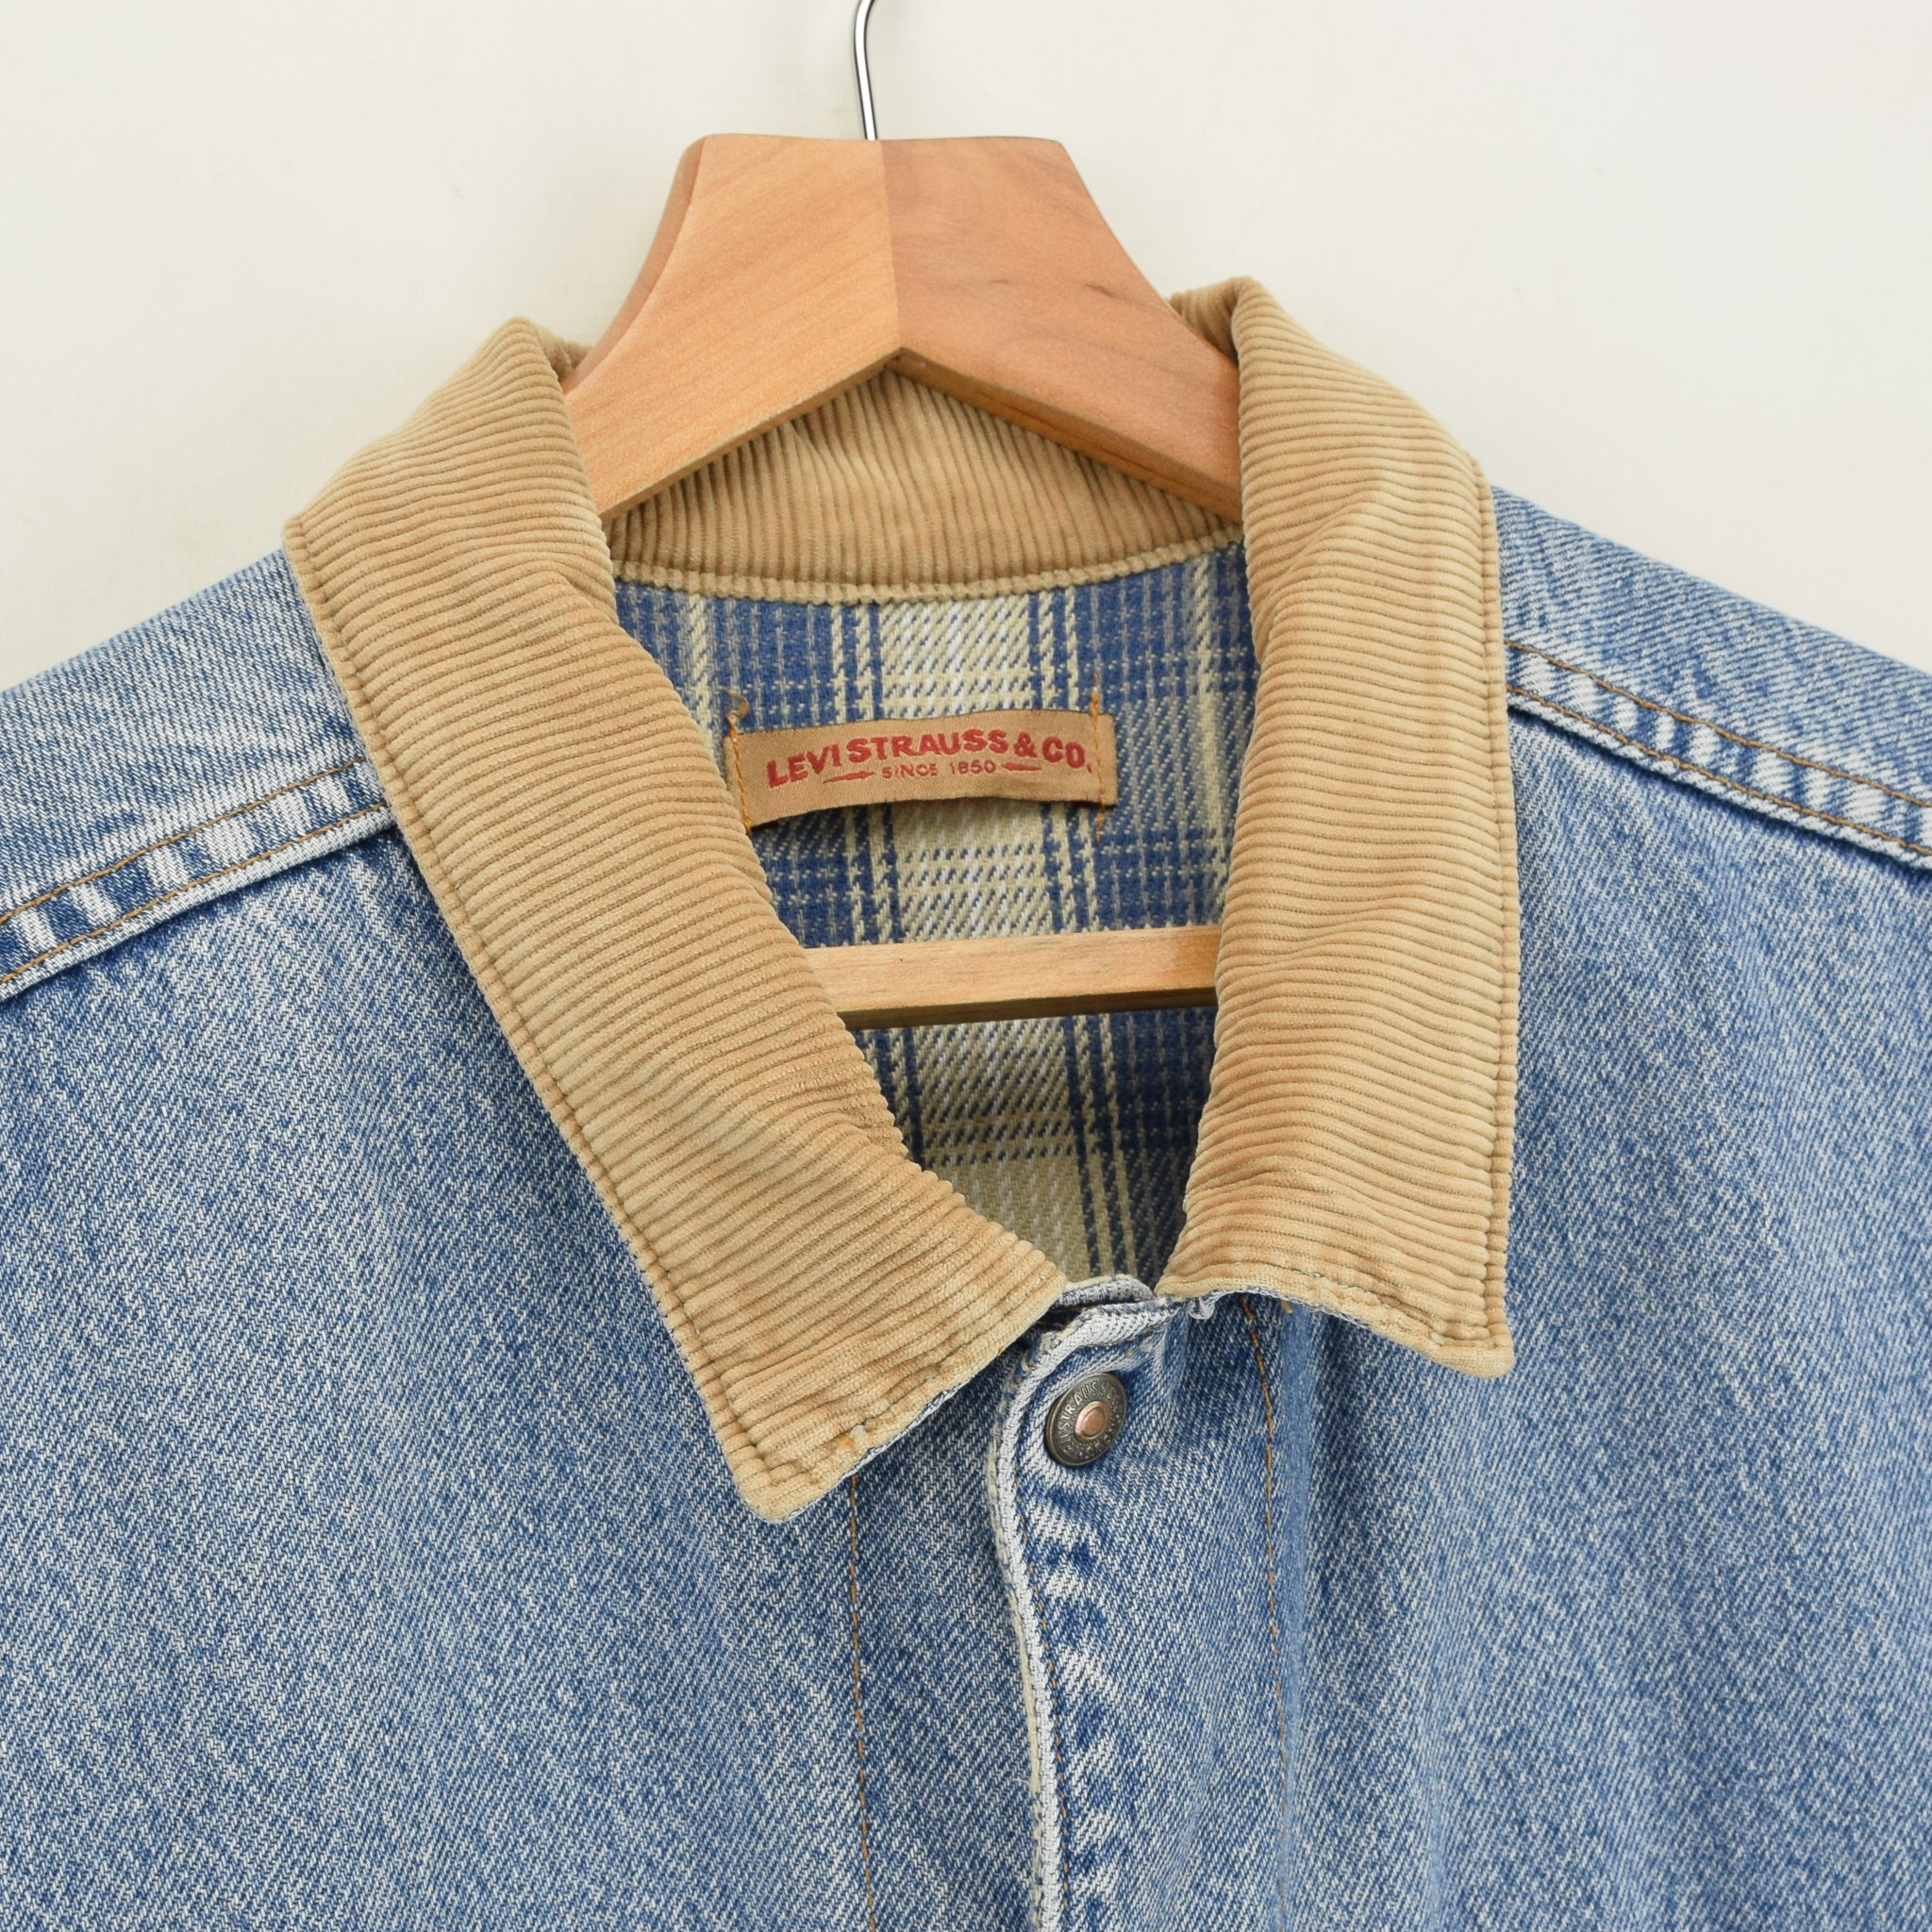 Vintage Levi Reversible Blue Denim Gilet Cord Collar Waistcoat Made in USA XL collar